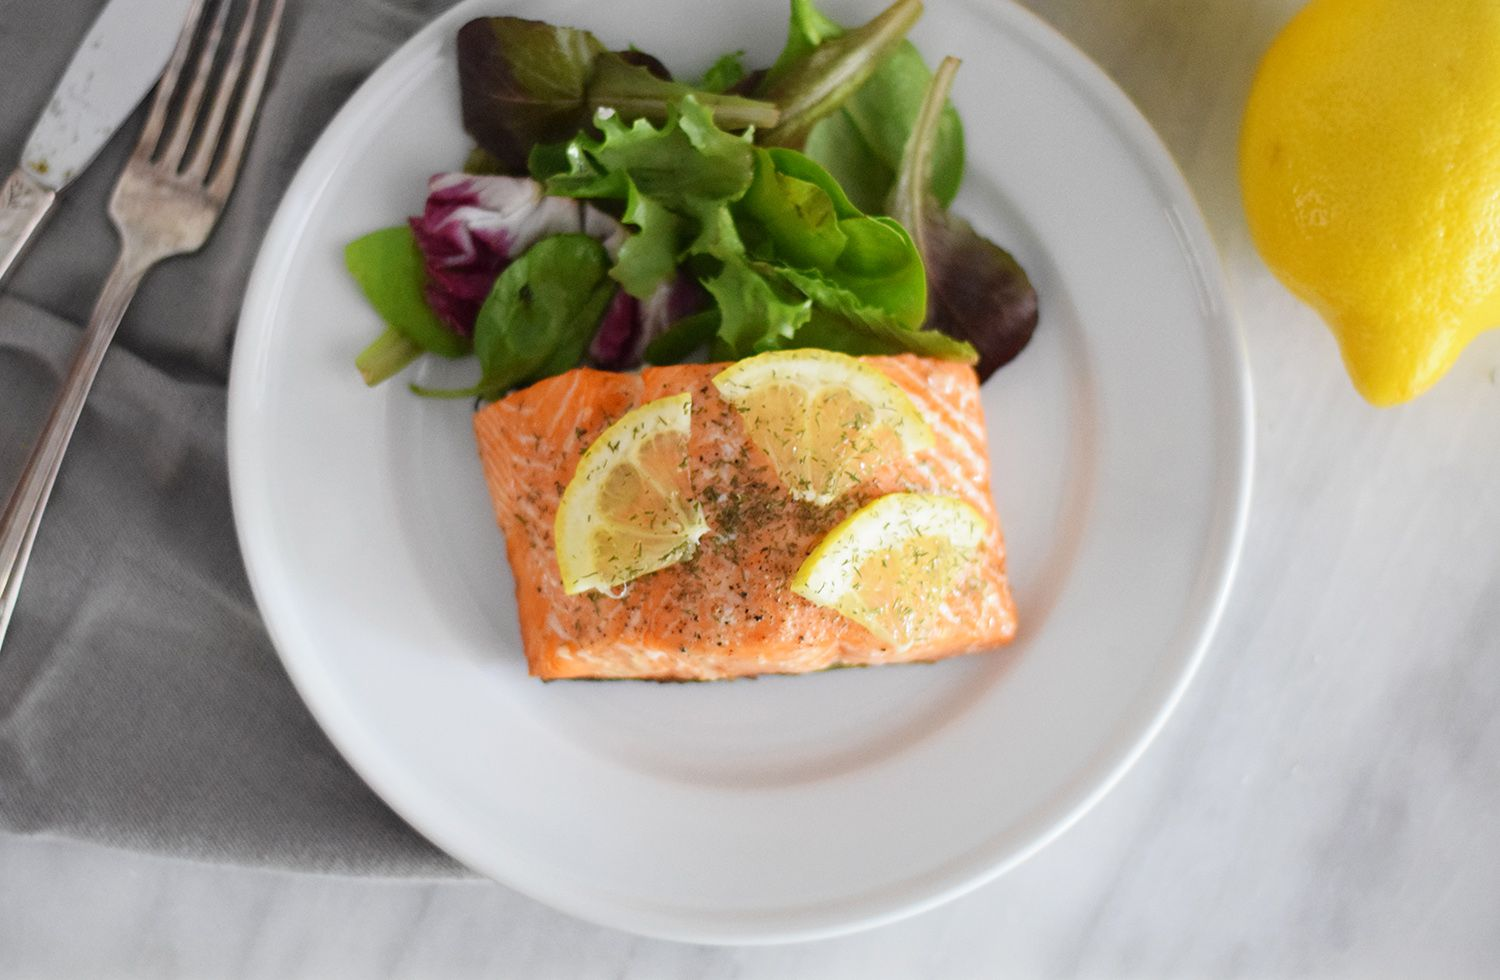 Grilled salmon topped with bits of fresh lemon and served with leafy greens